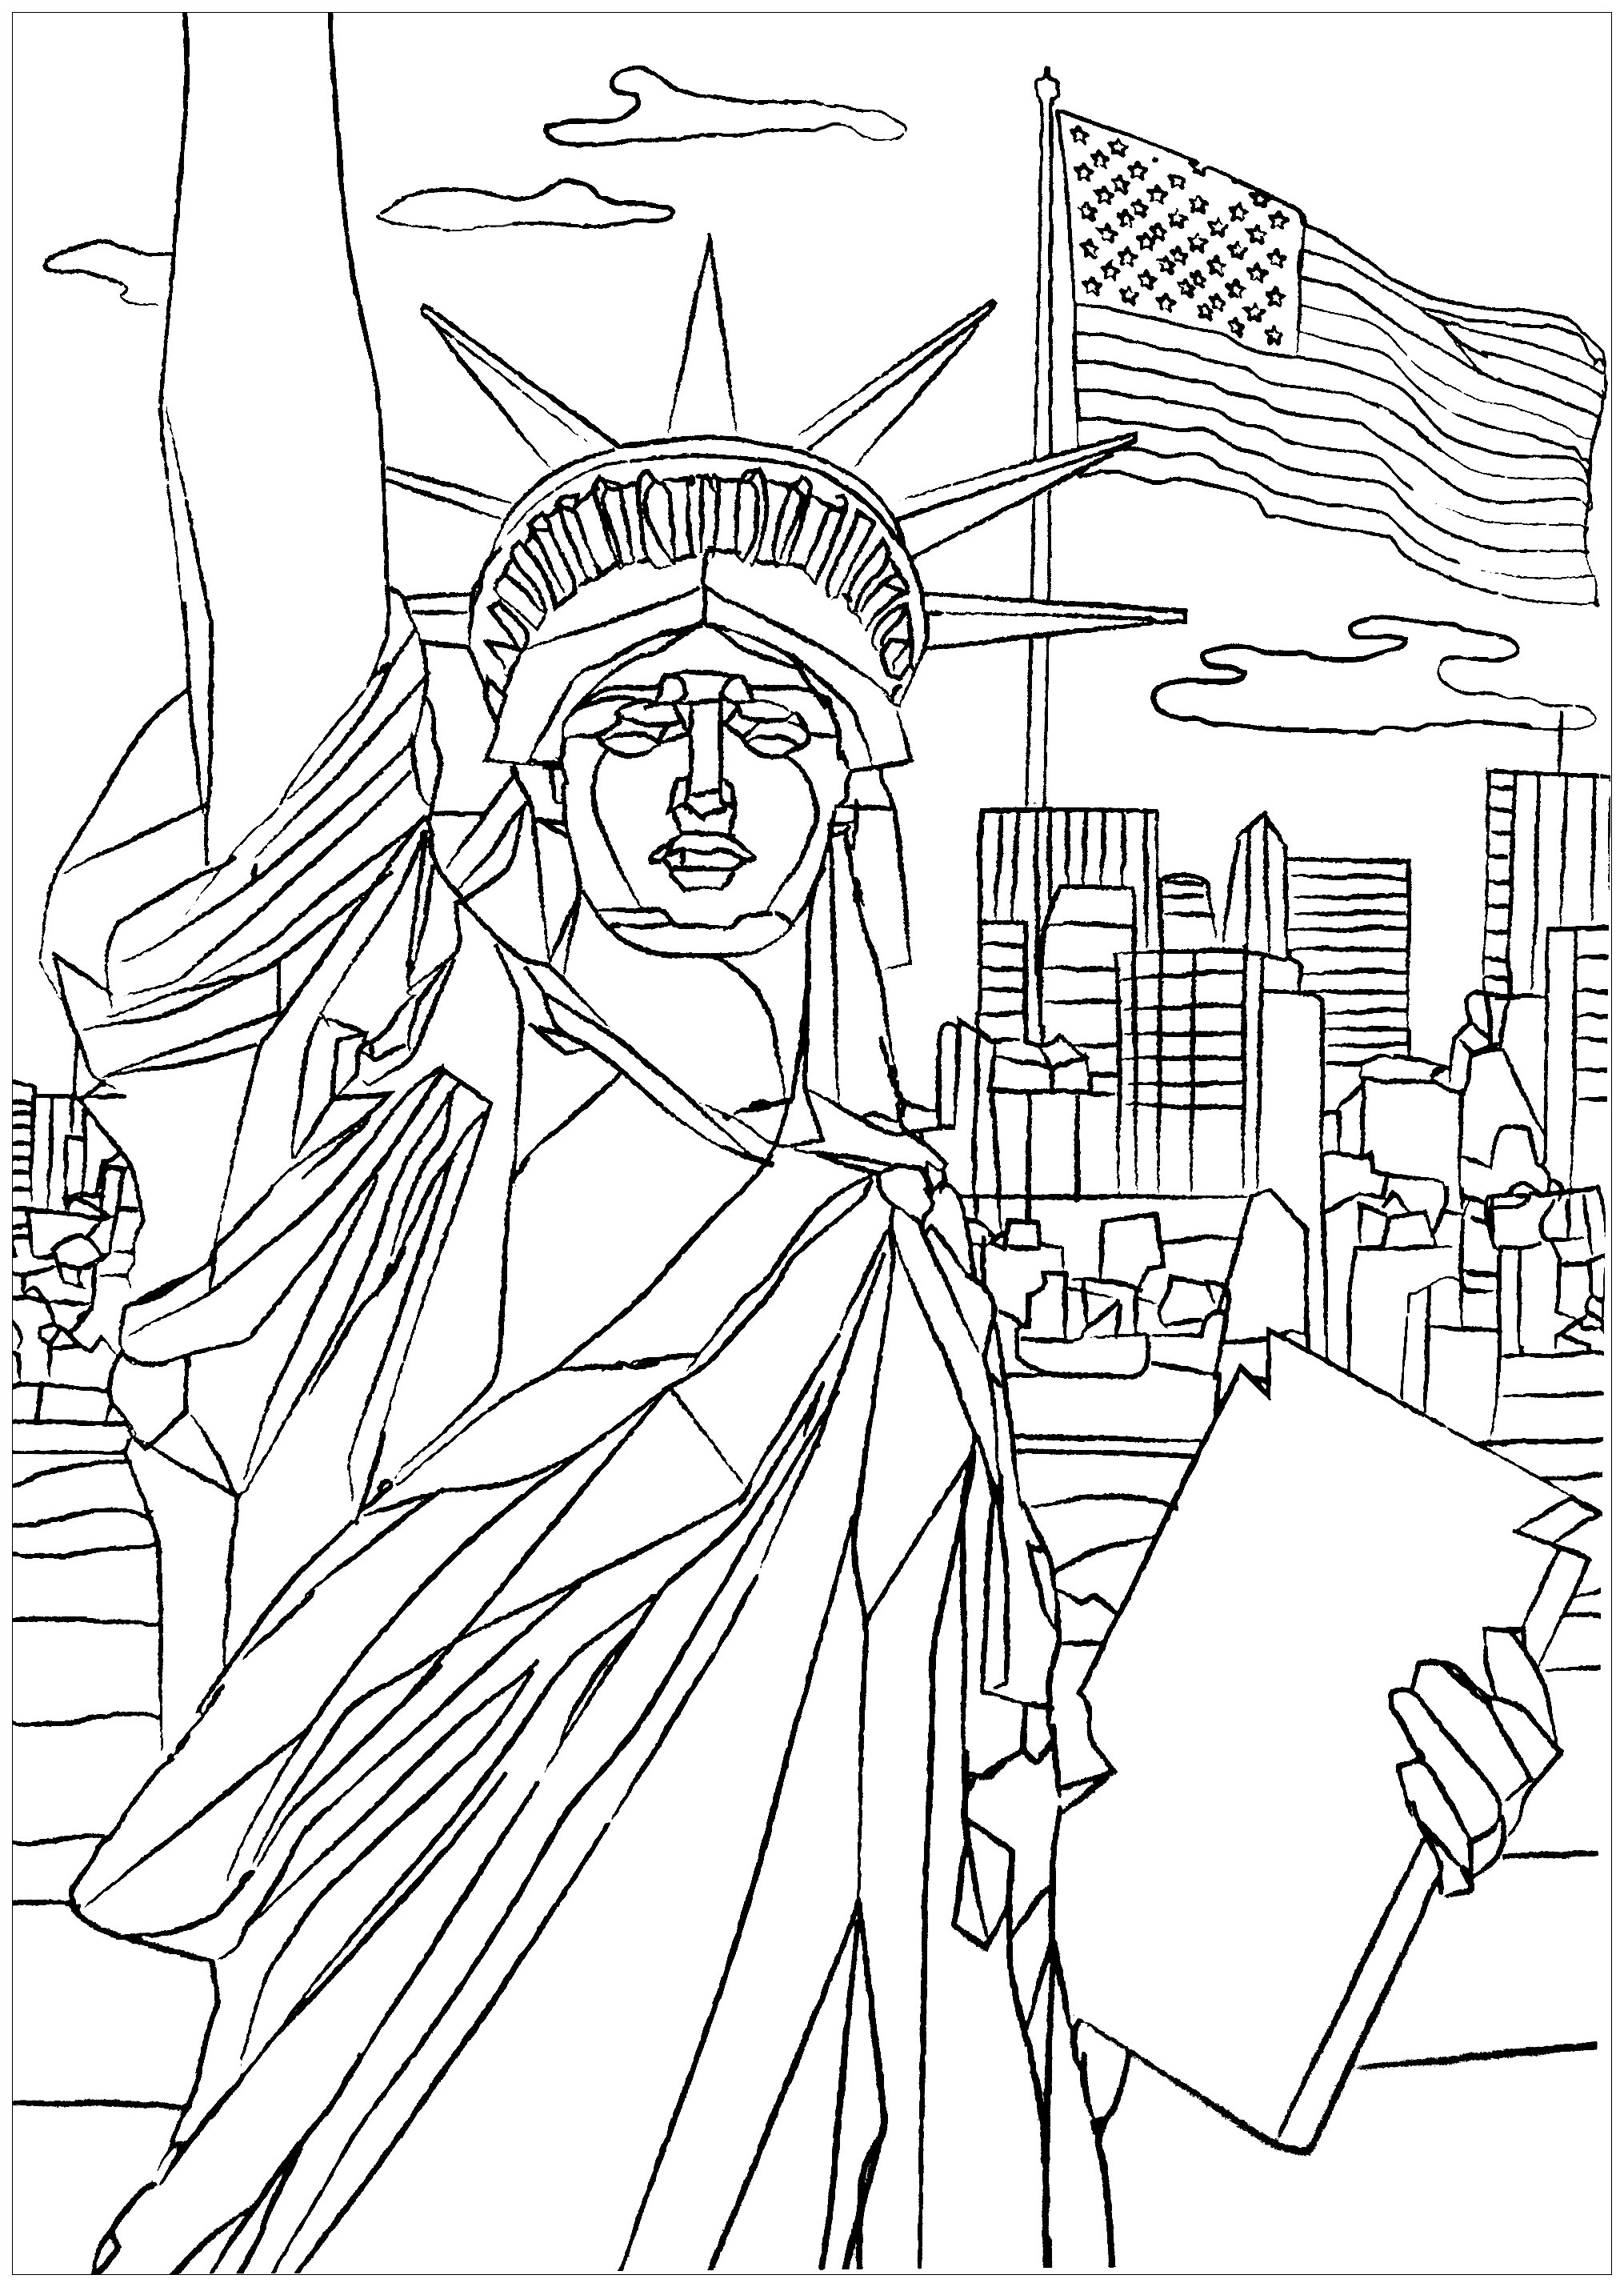 Colorear para Adultos : New York - 1